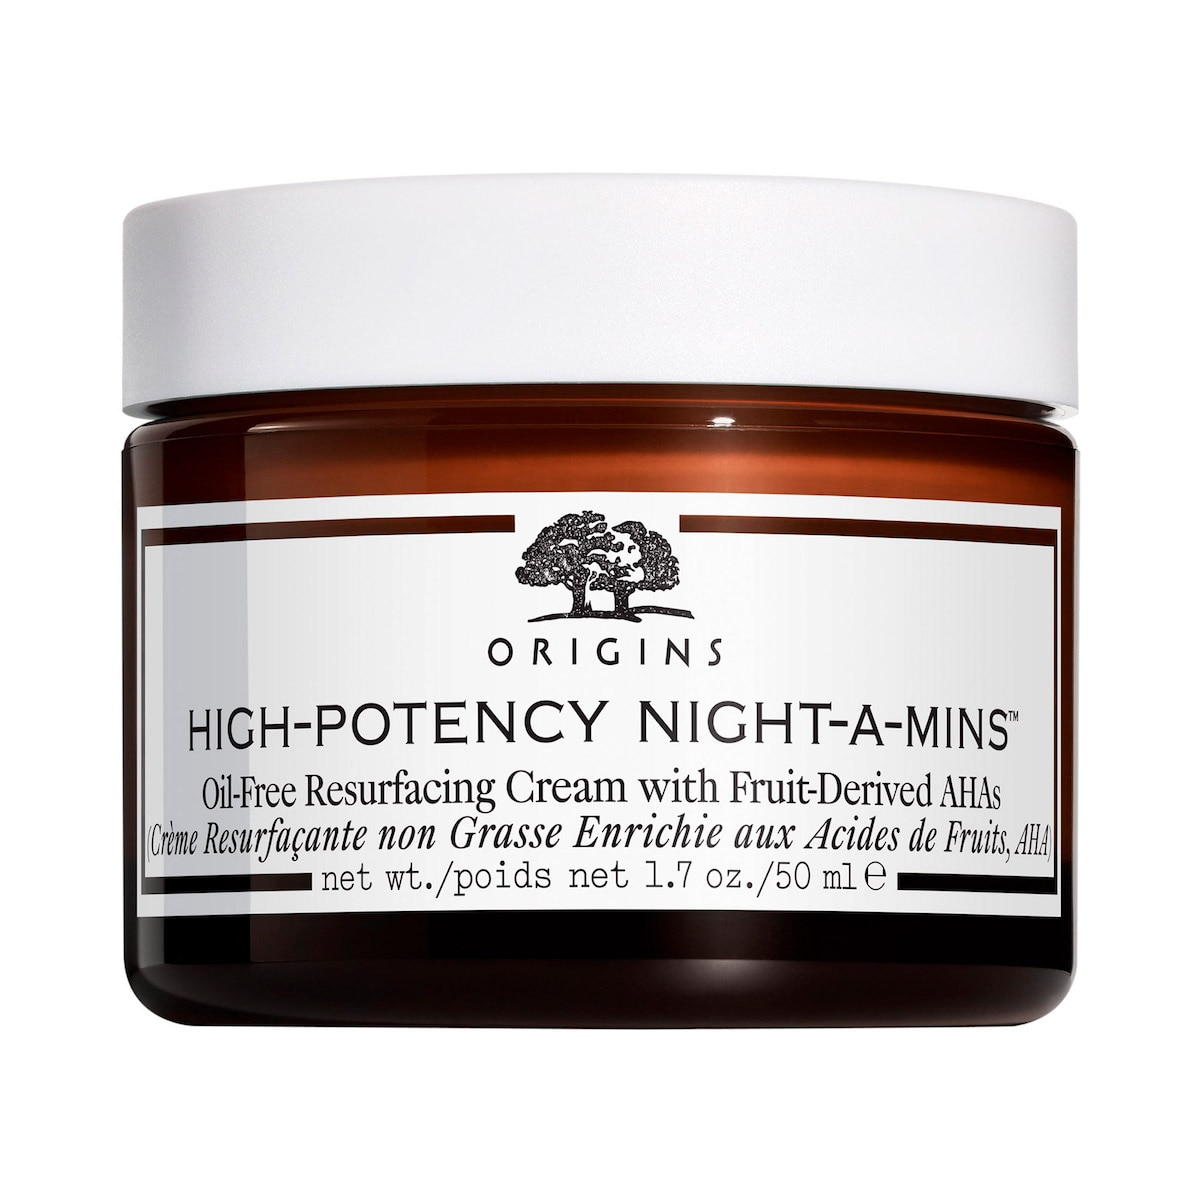 HIGHPOTENCY NIGHTAMINS™ OILFREE RESURFACING CREAM WITH FRUIT DERIVED AHAS